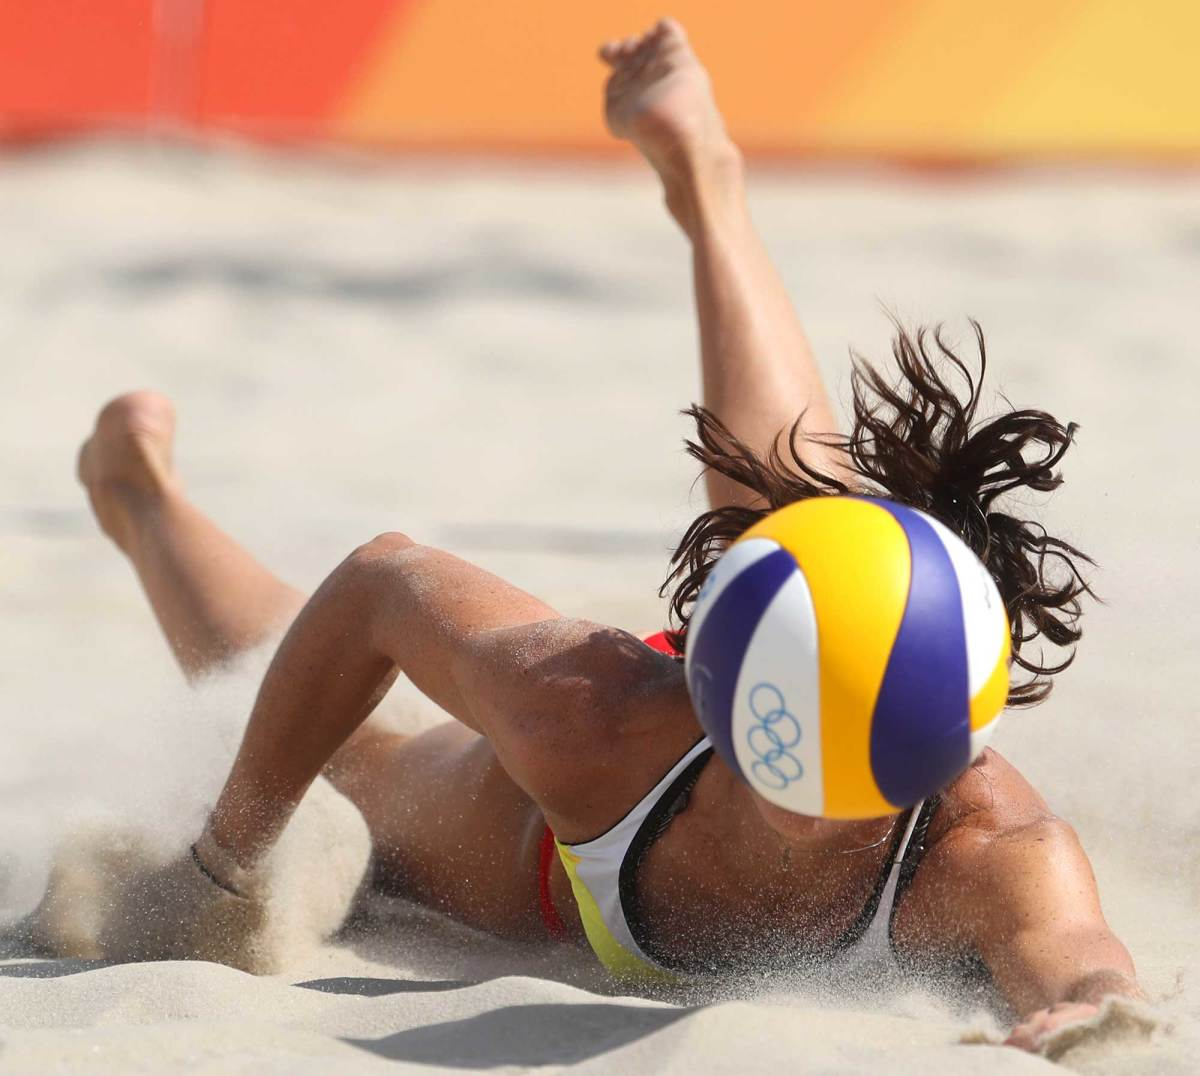 Womens-beach-volleyball-pictures-2016-rio-olympics-27.jpg